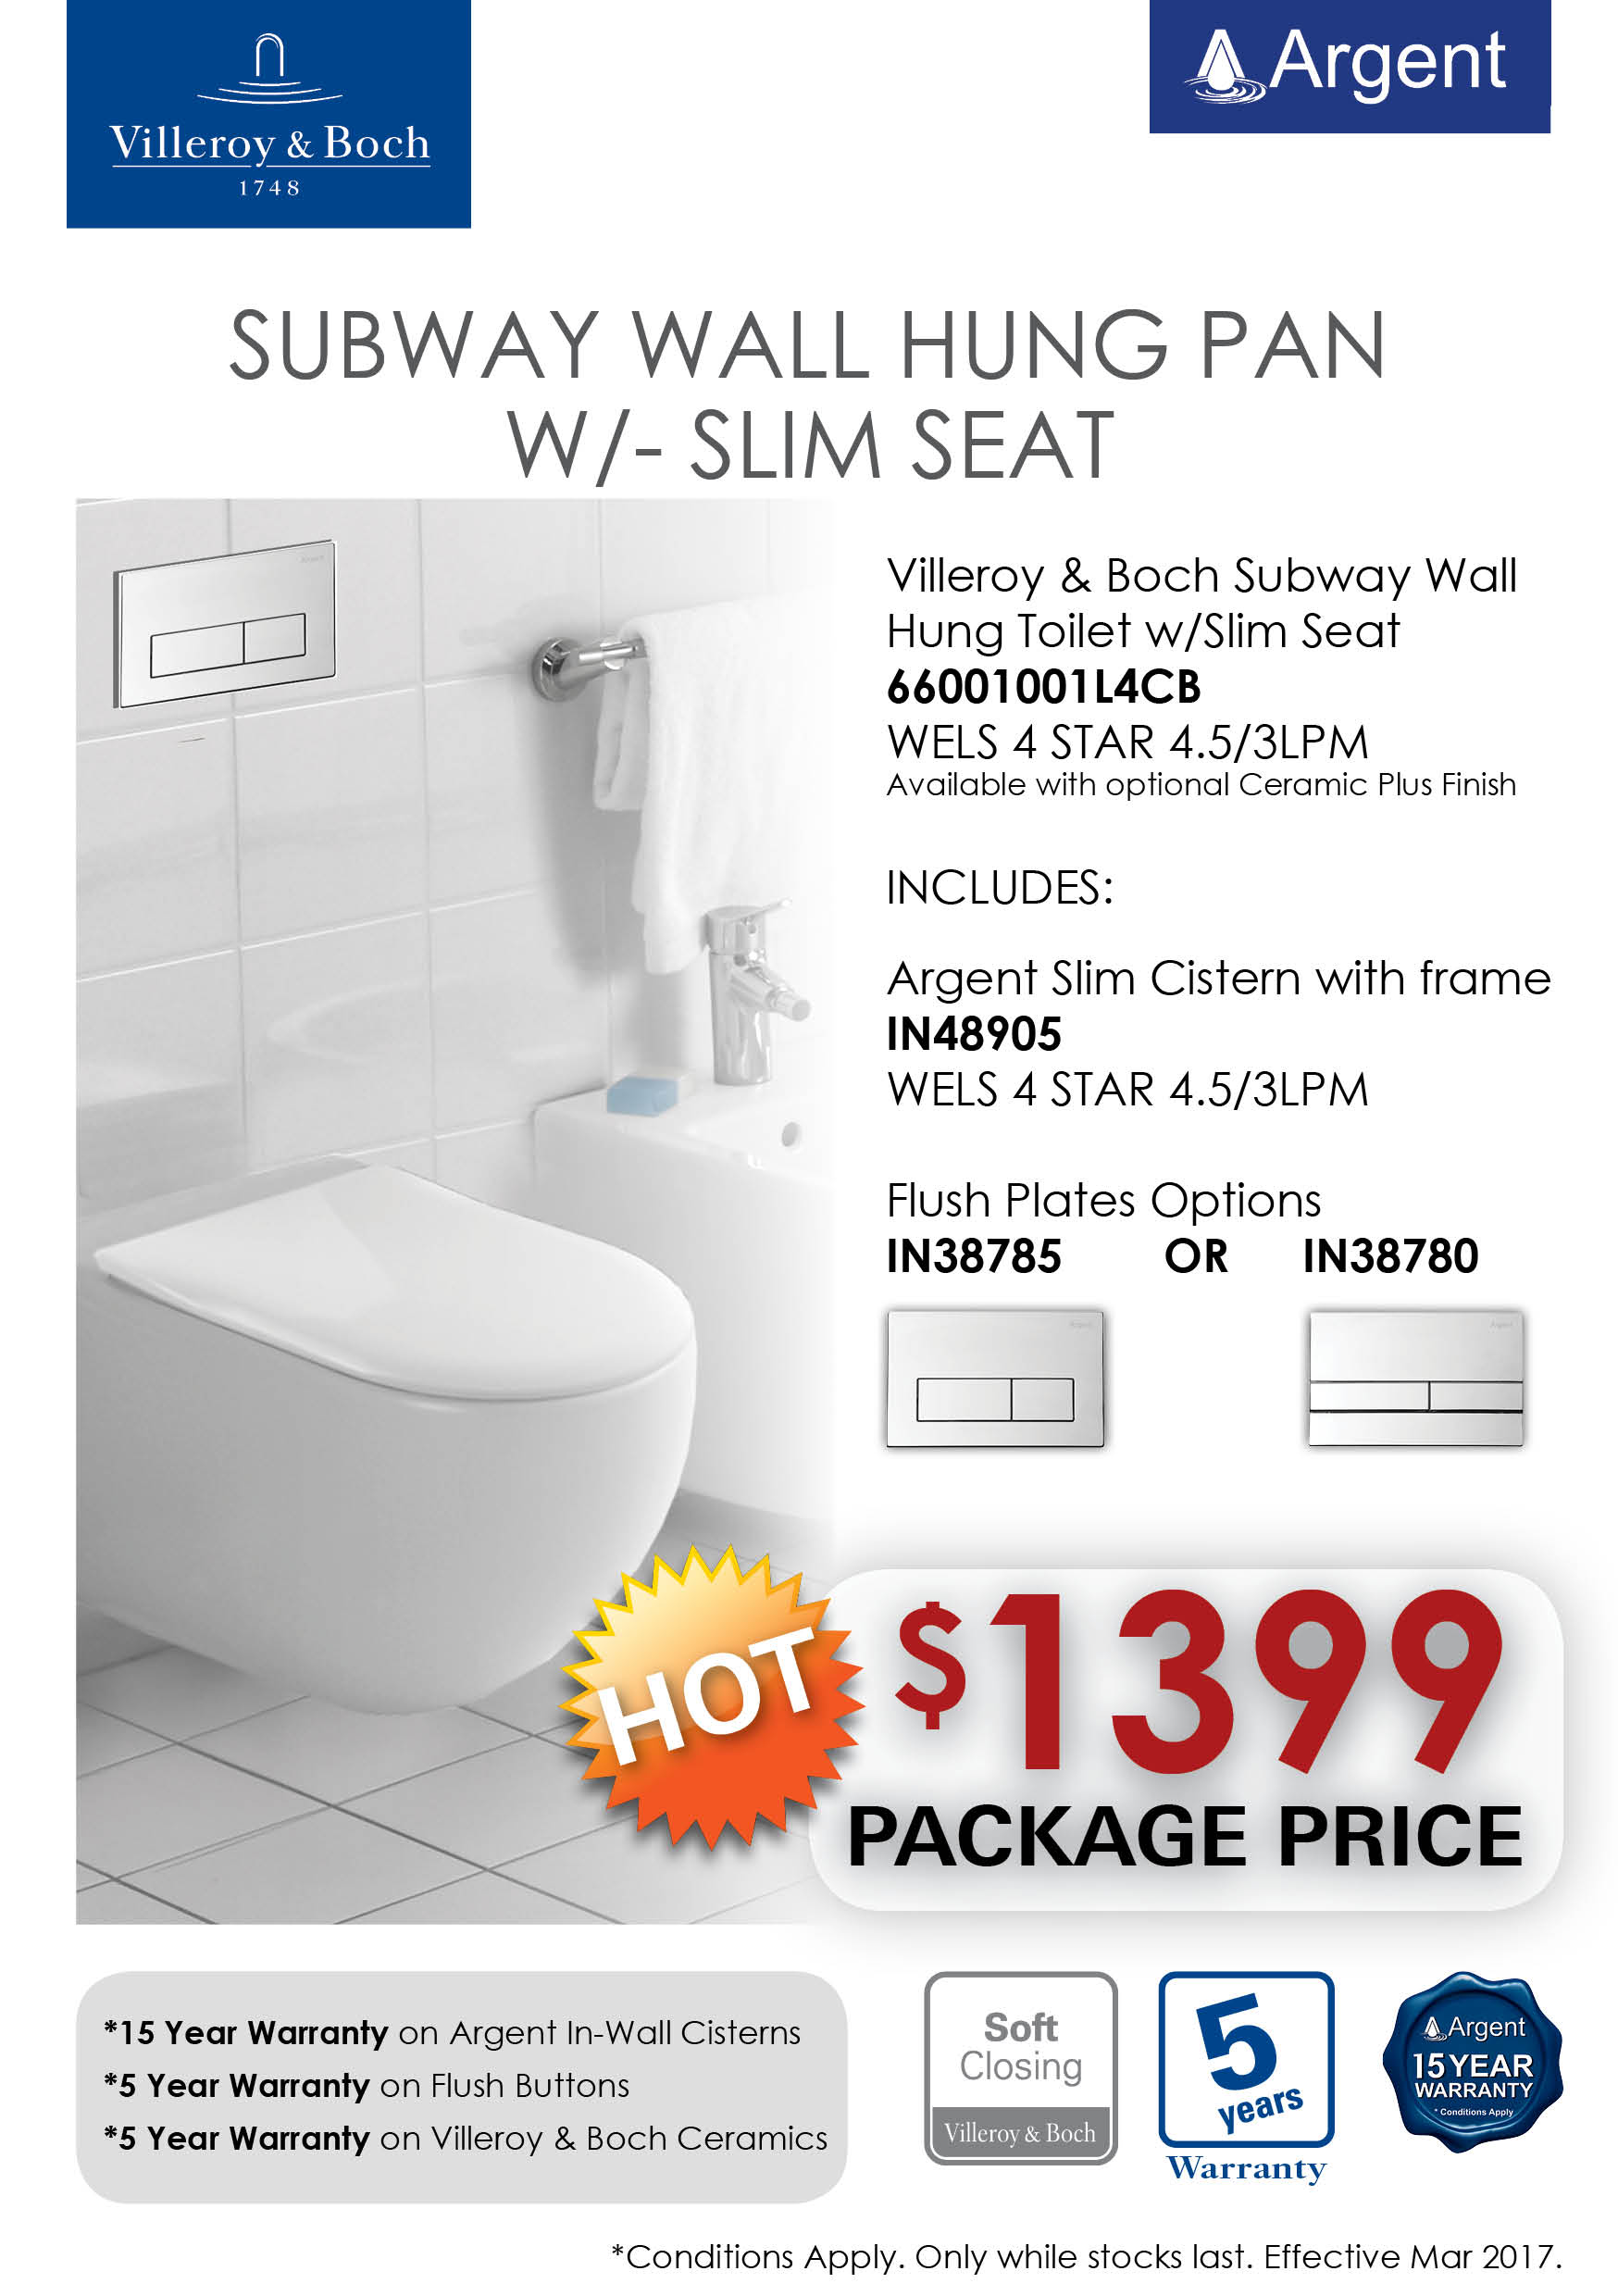 V&B SUBWAY WH Slim Seat Toilet PRRP